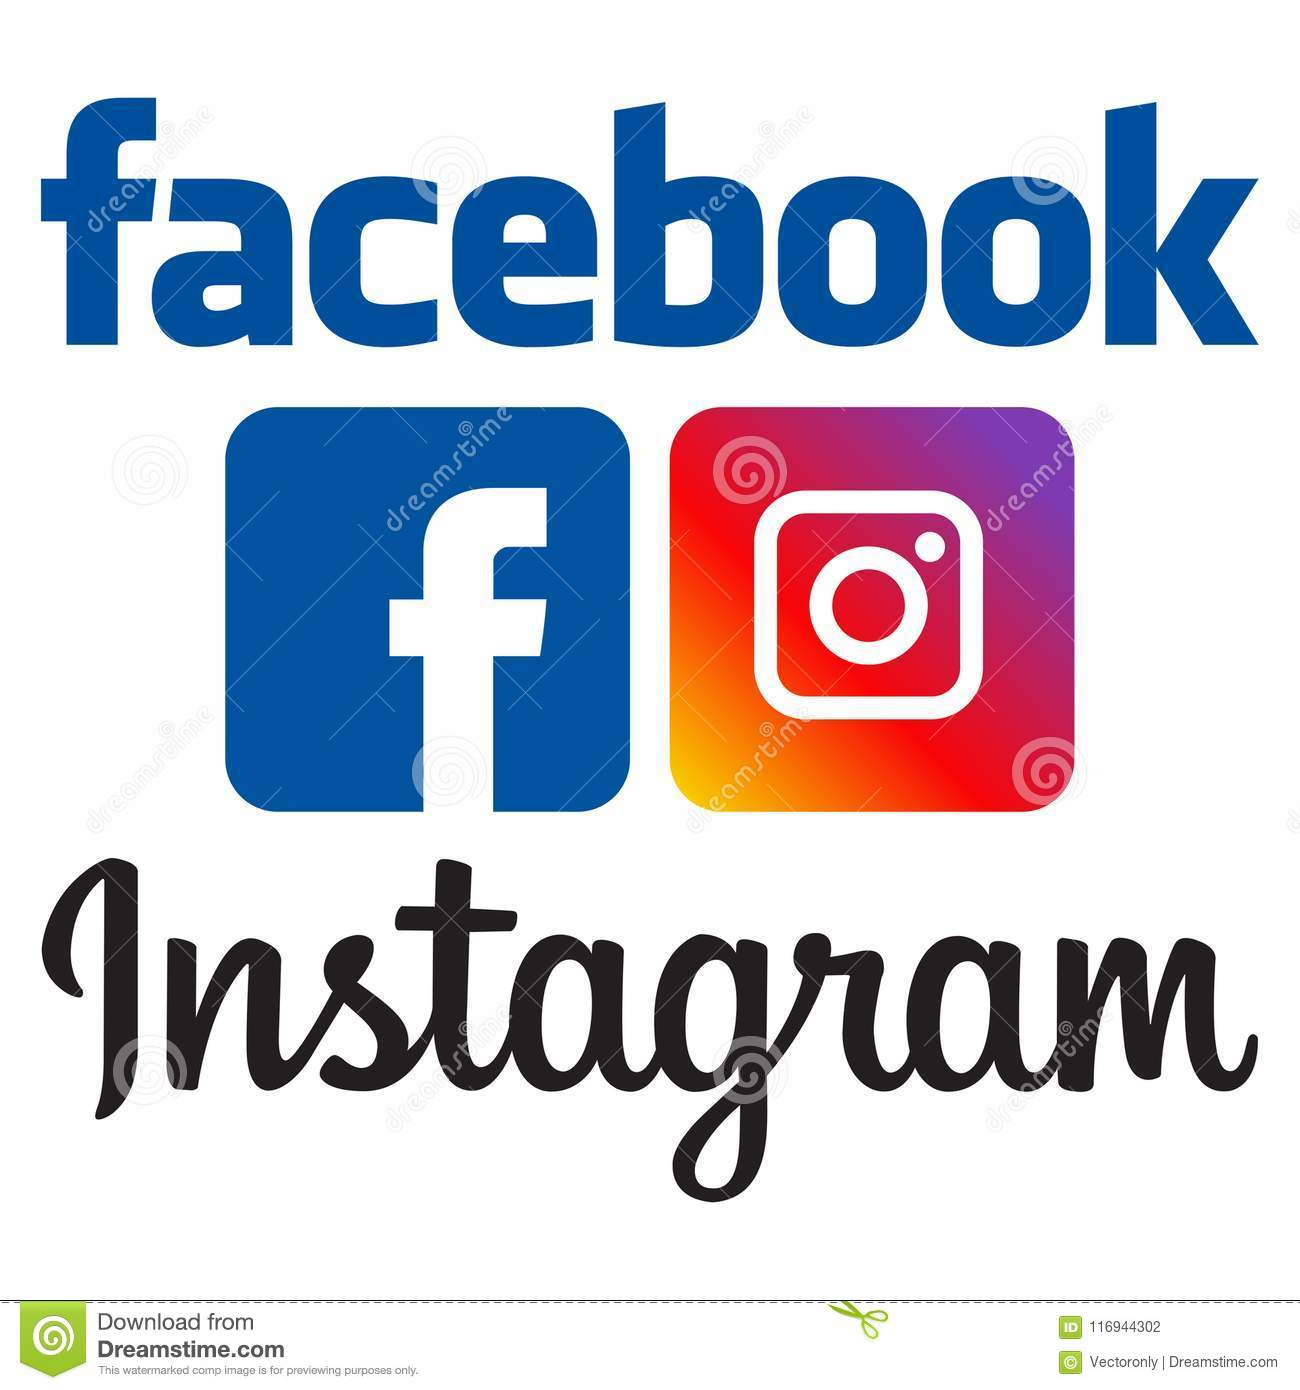 Logotipos oficiais do facebook e do instagram